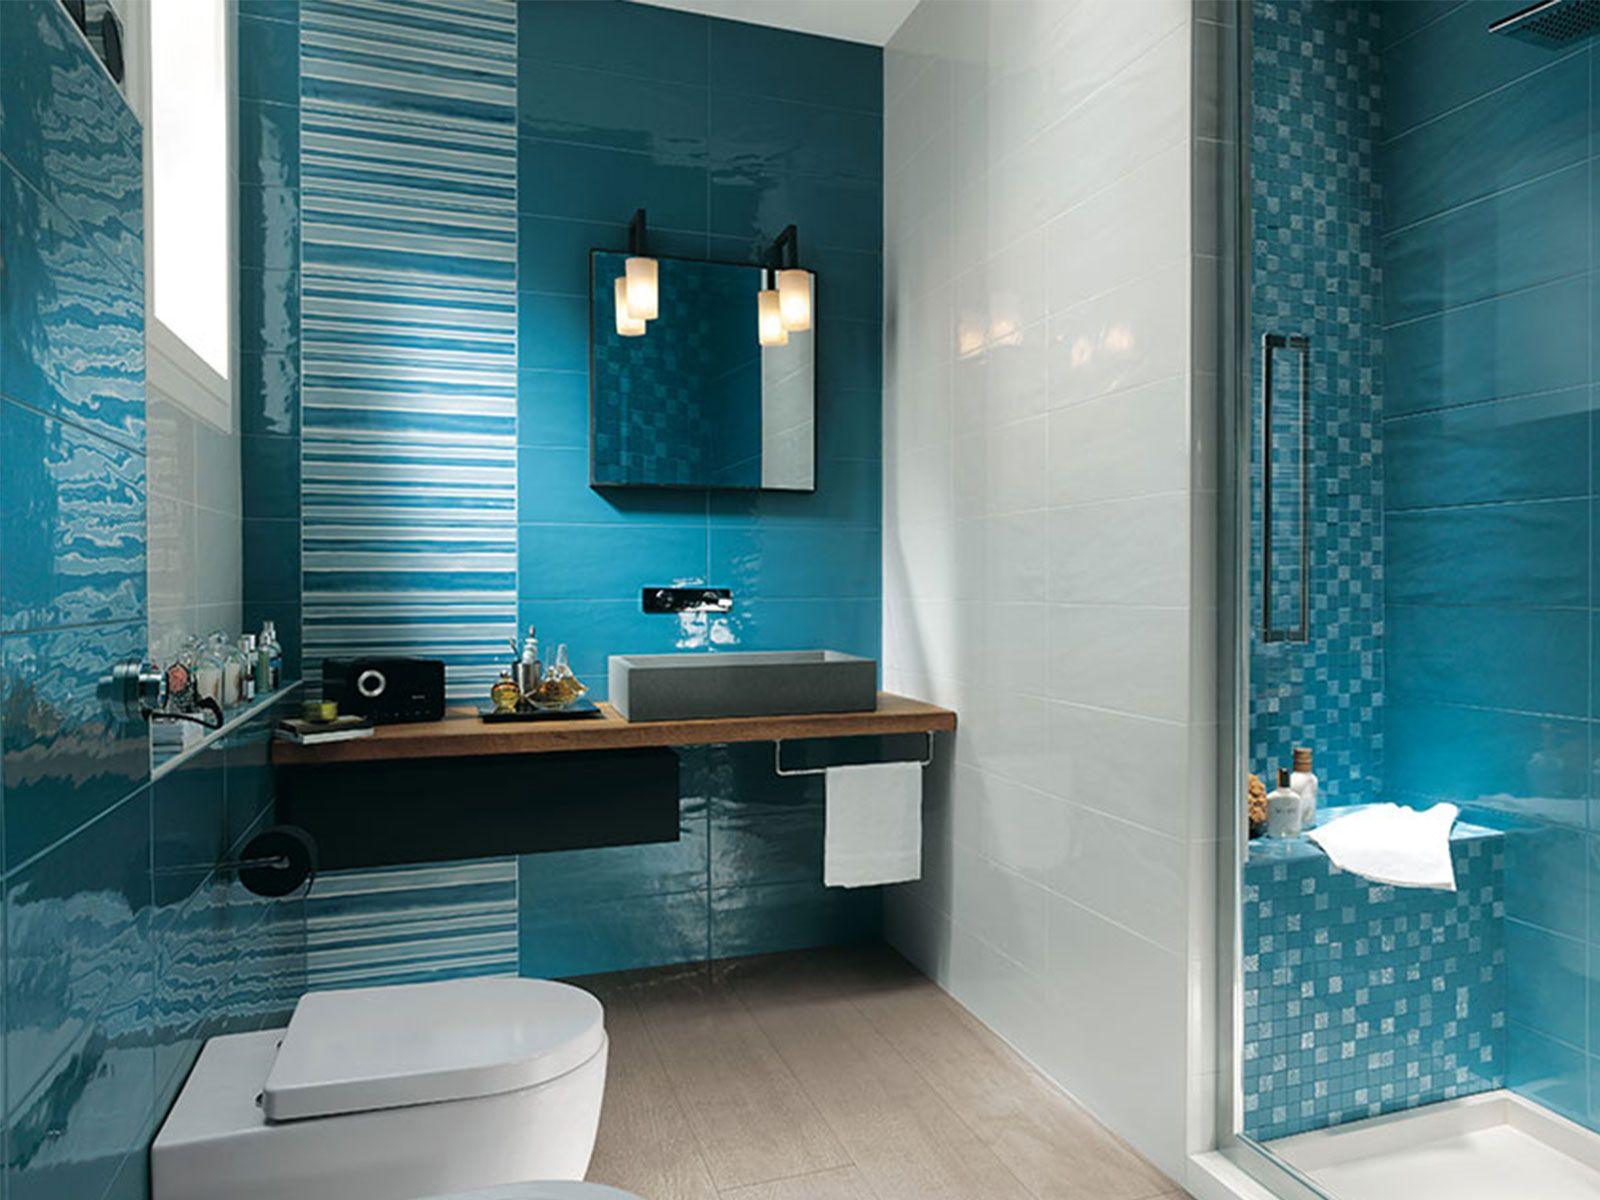 charming blue bathroom color schemes | Aqua Blue Bathroom Designs | Kuyaroom.com in 2019 | Blue ...